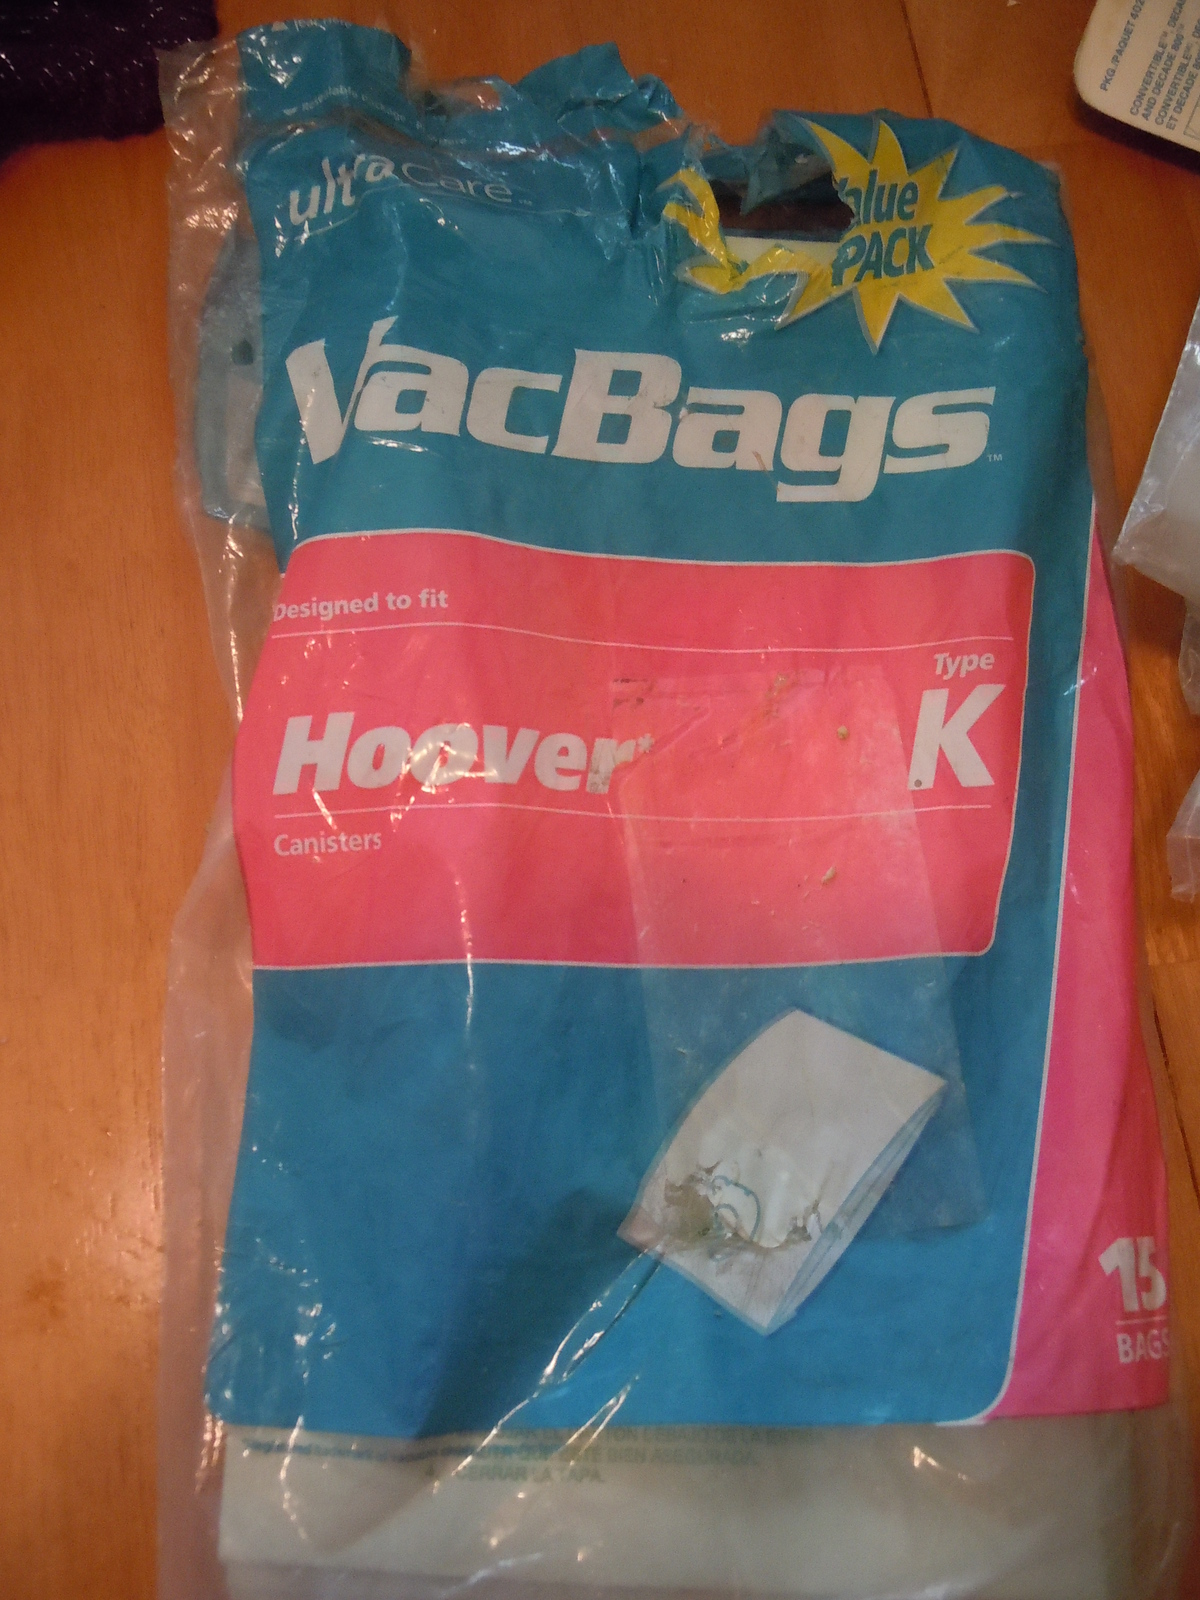 Hoover Canister Type K Vacbags Ultra Light 13 Bags